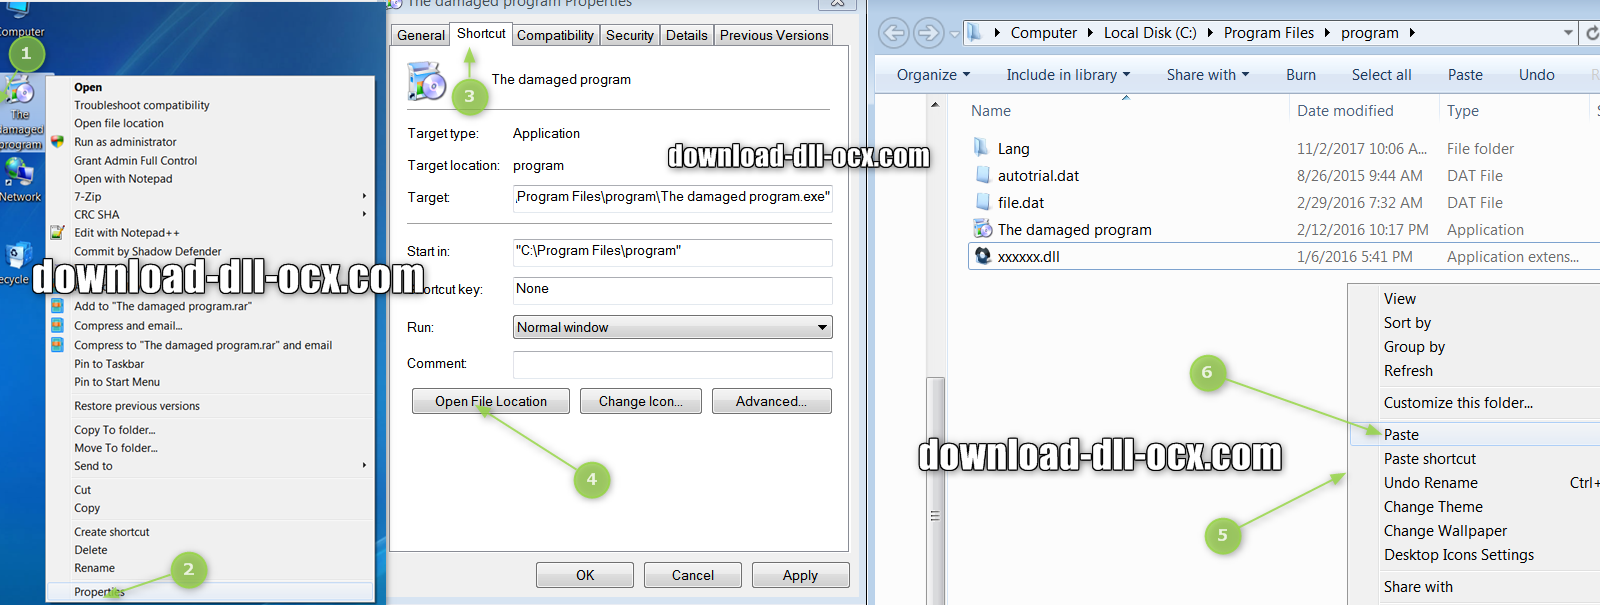 how to install TosAvAPI.dll file? for fix missing